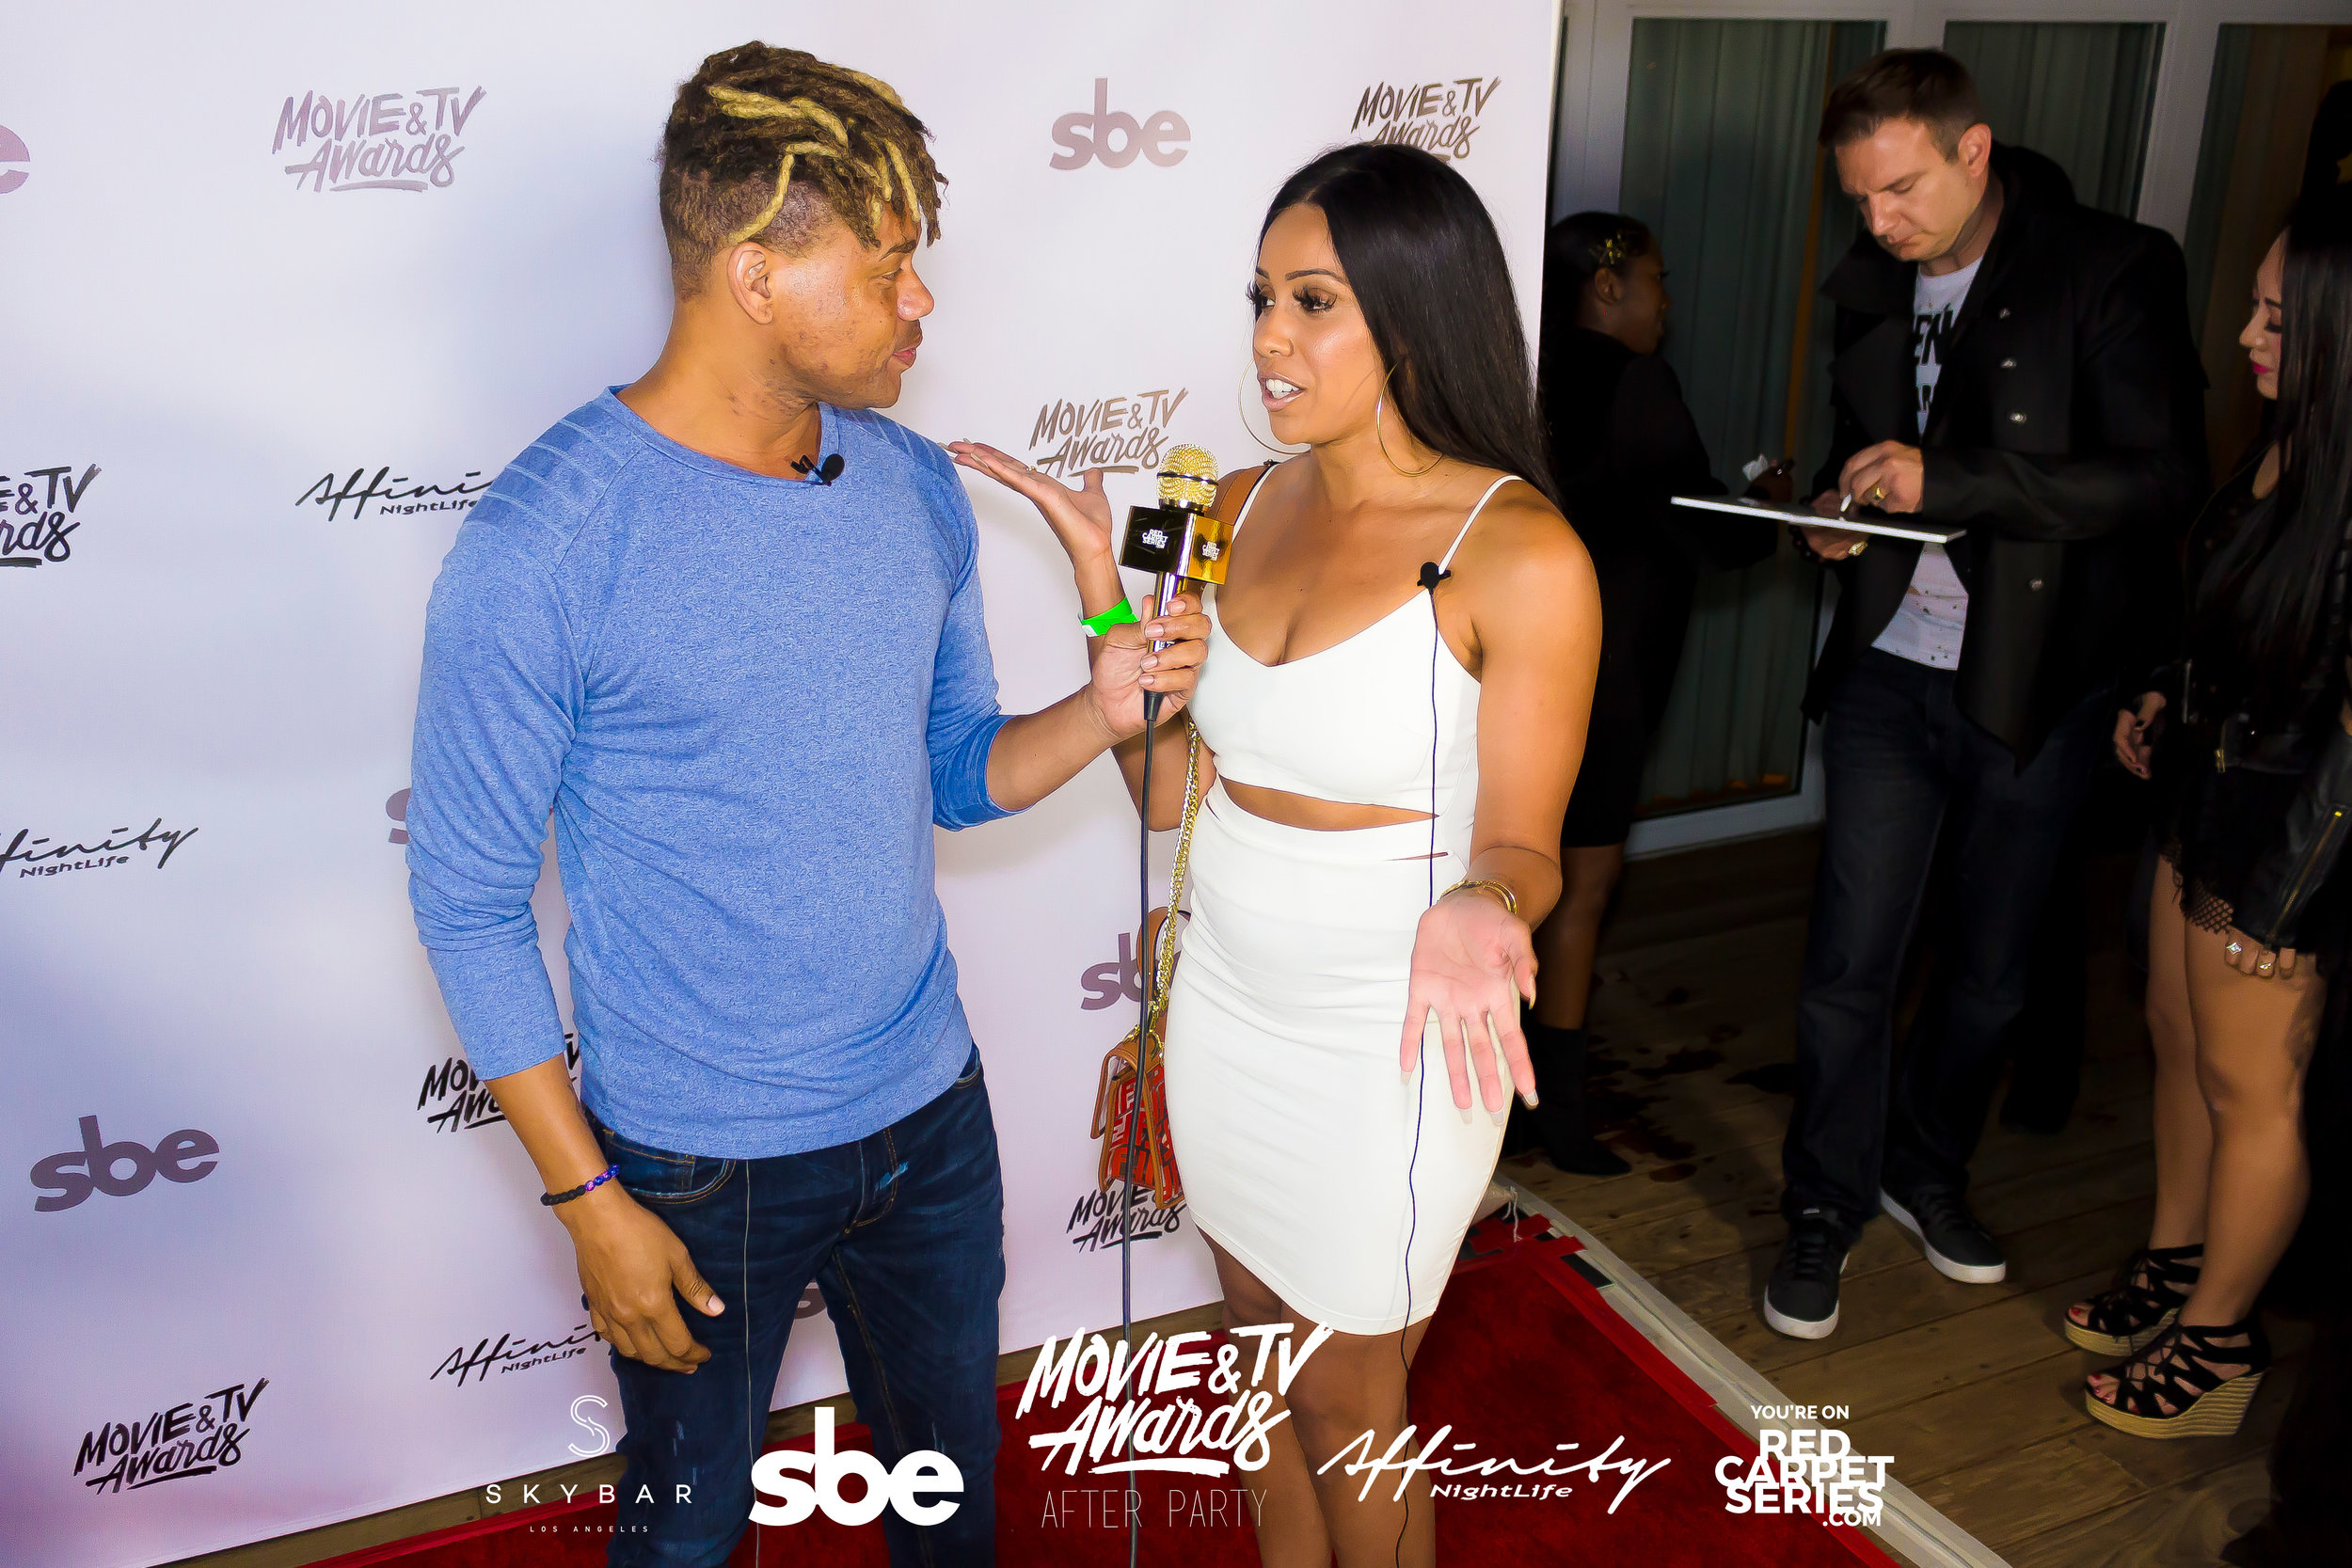 Affinity Nightlife MTV Movie & TV Awards After Party - Skybar at Mondrian - 06-15-19 - Vol. 1_60.jpg